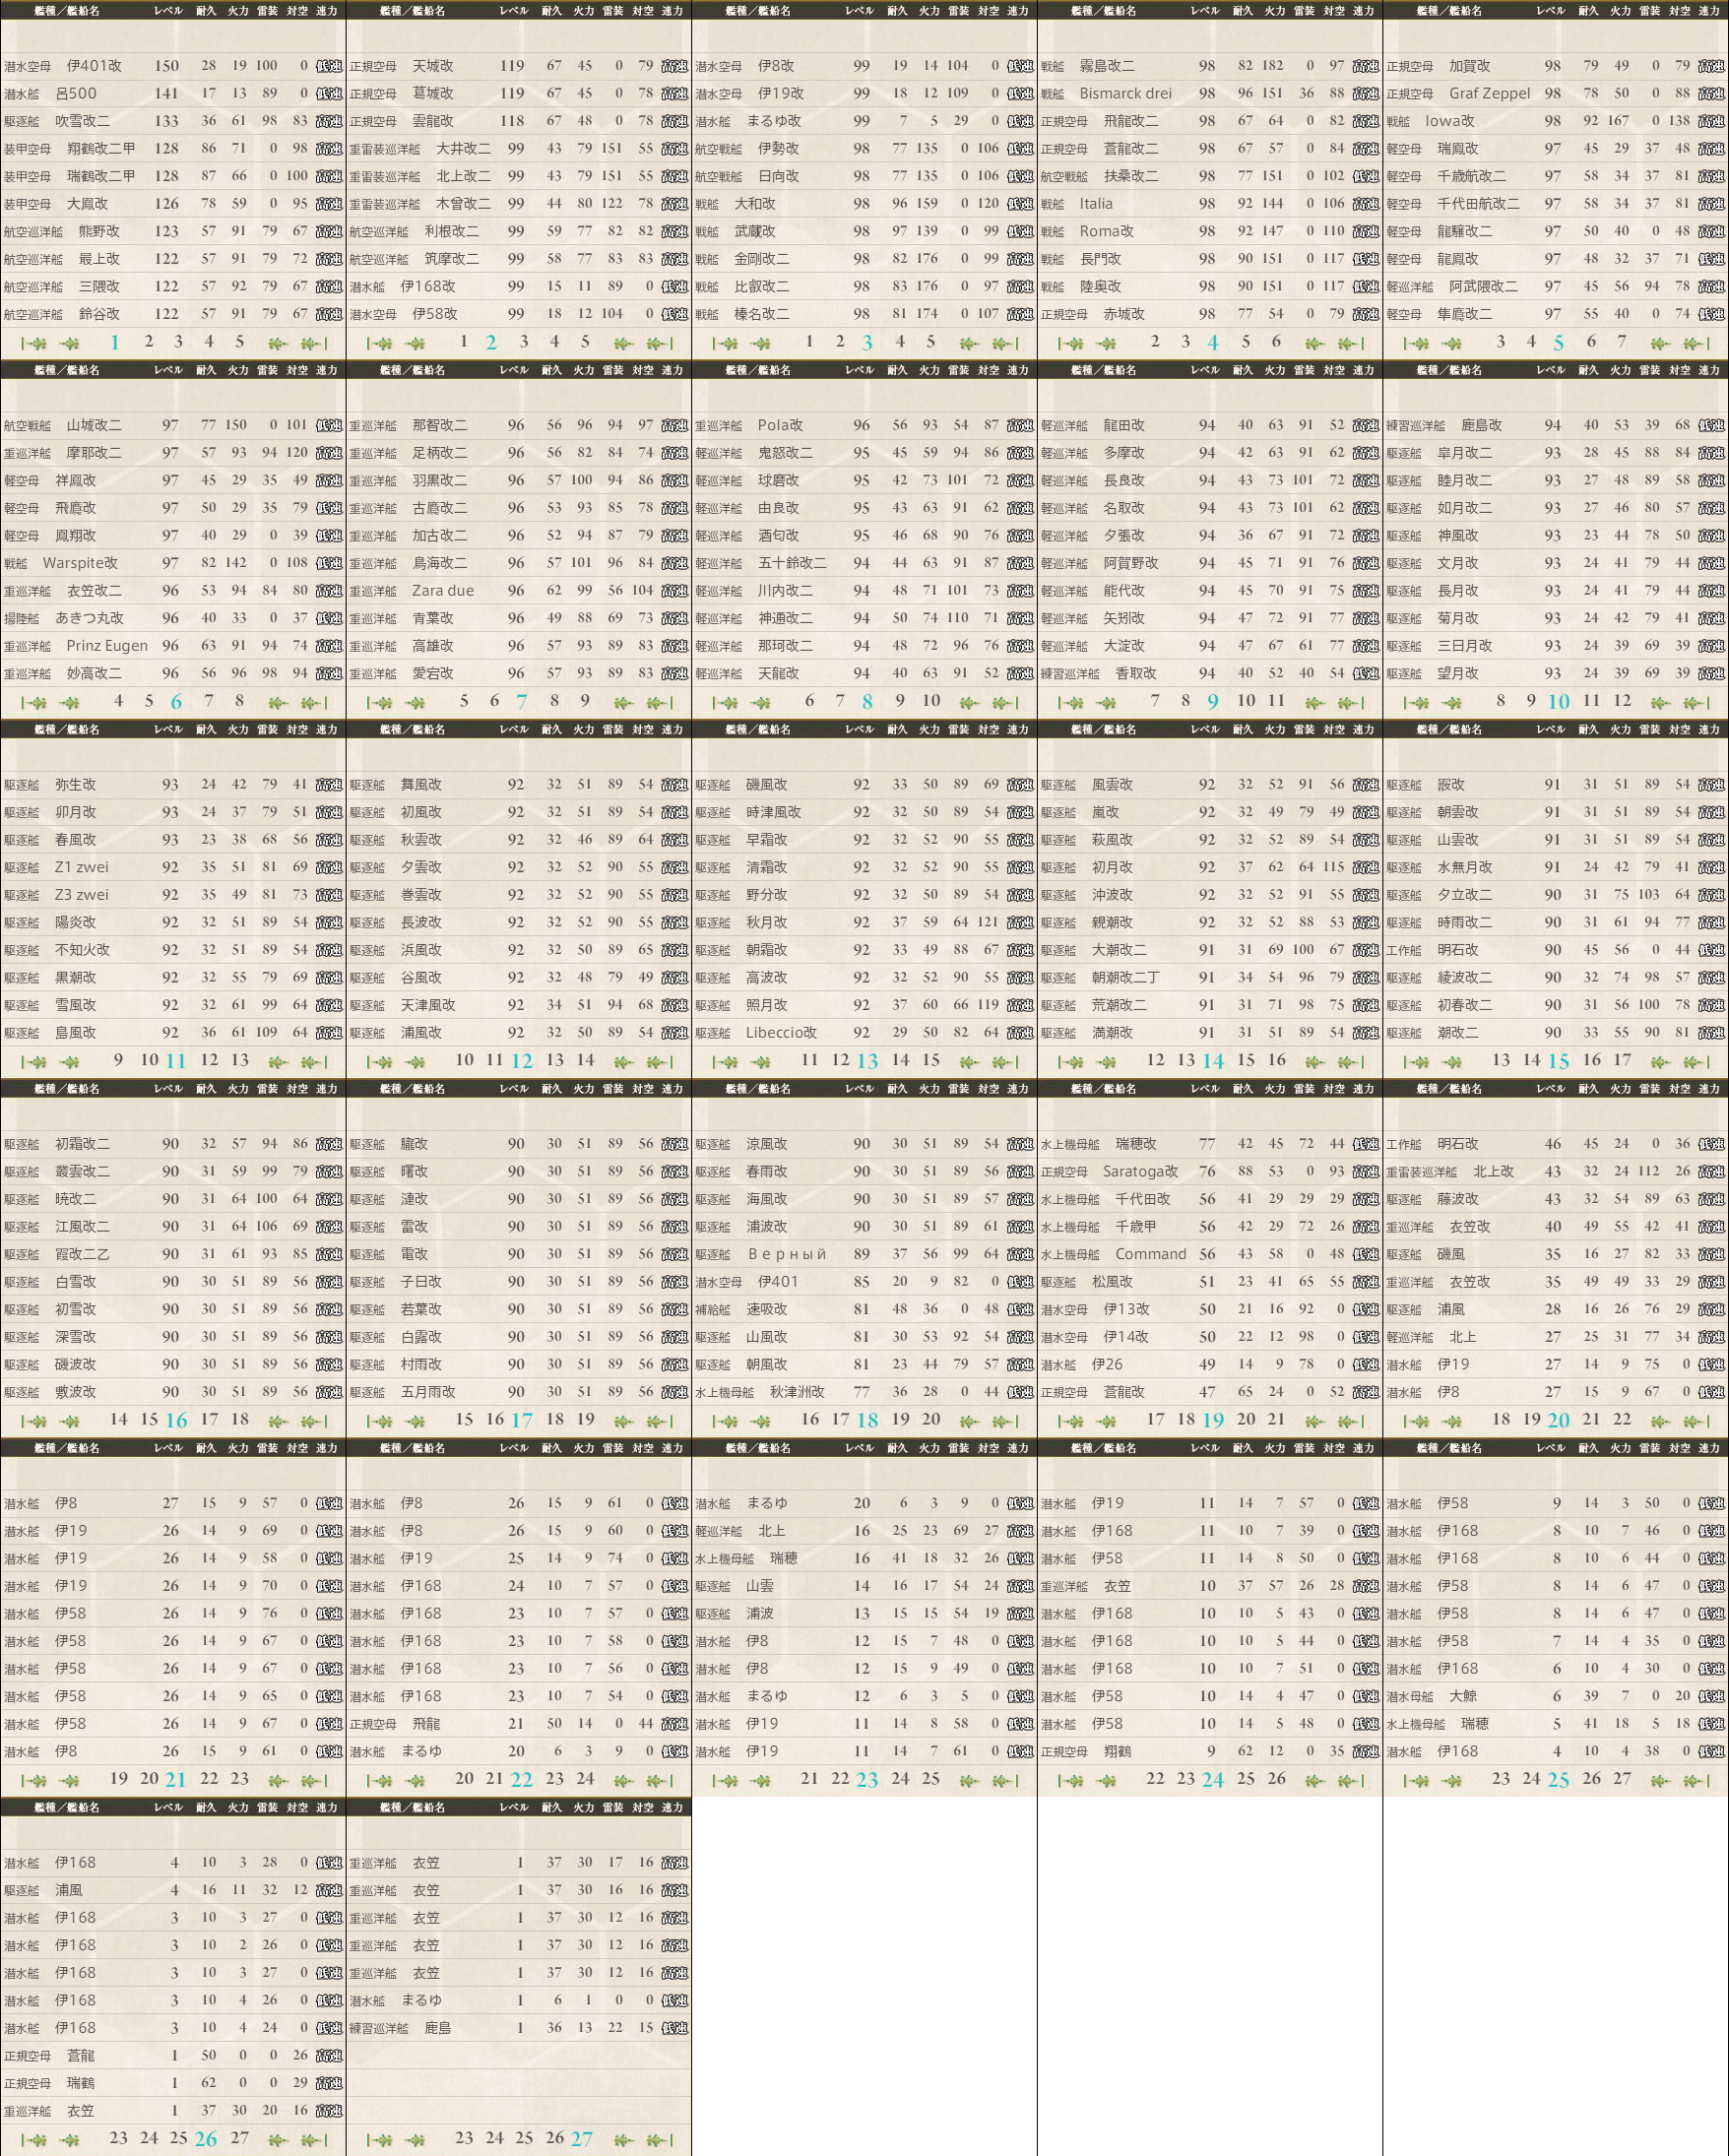 data.kancolle.levelsort.20170326.png